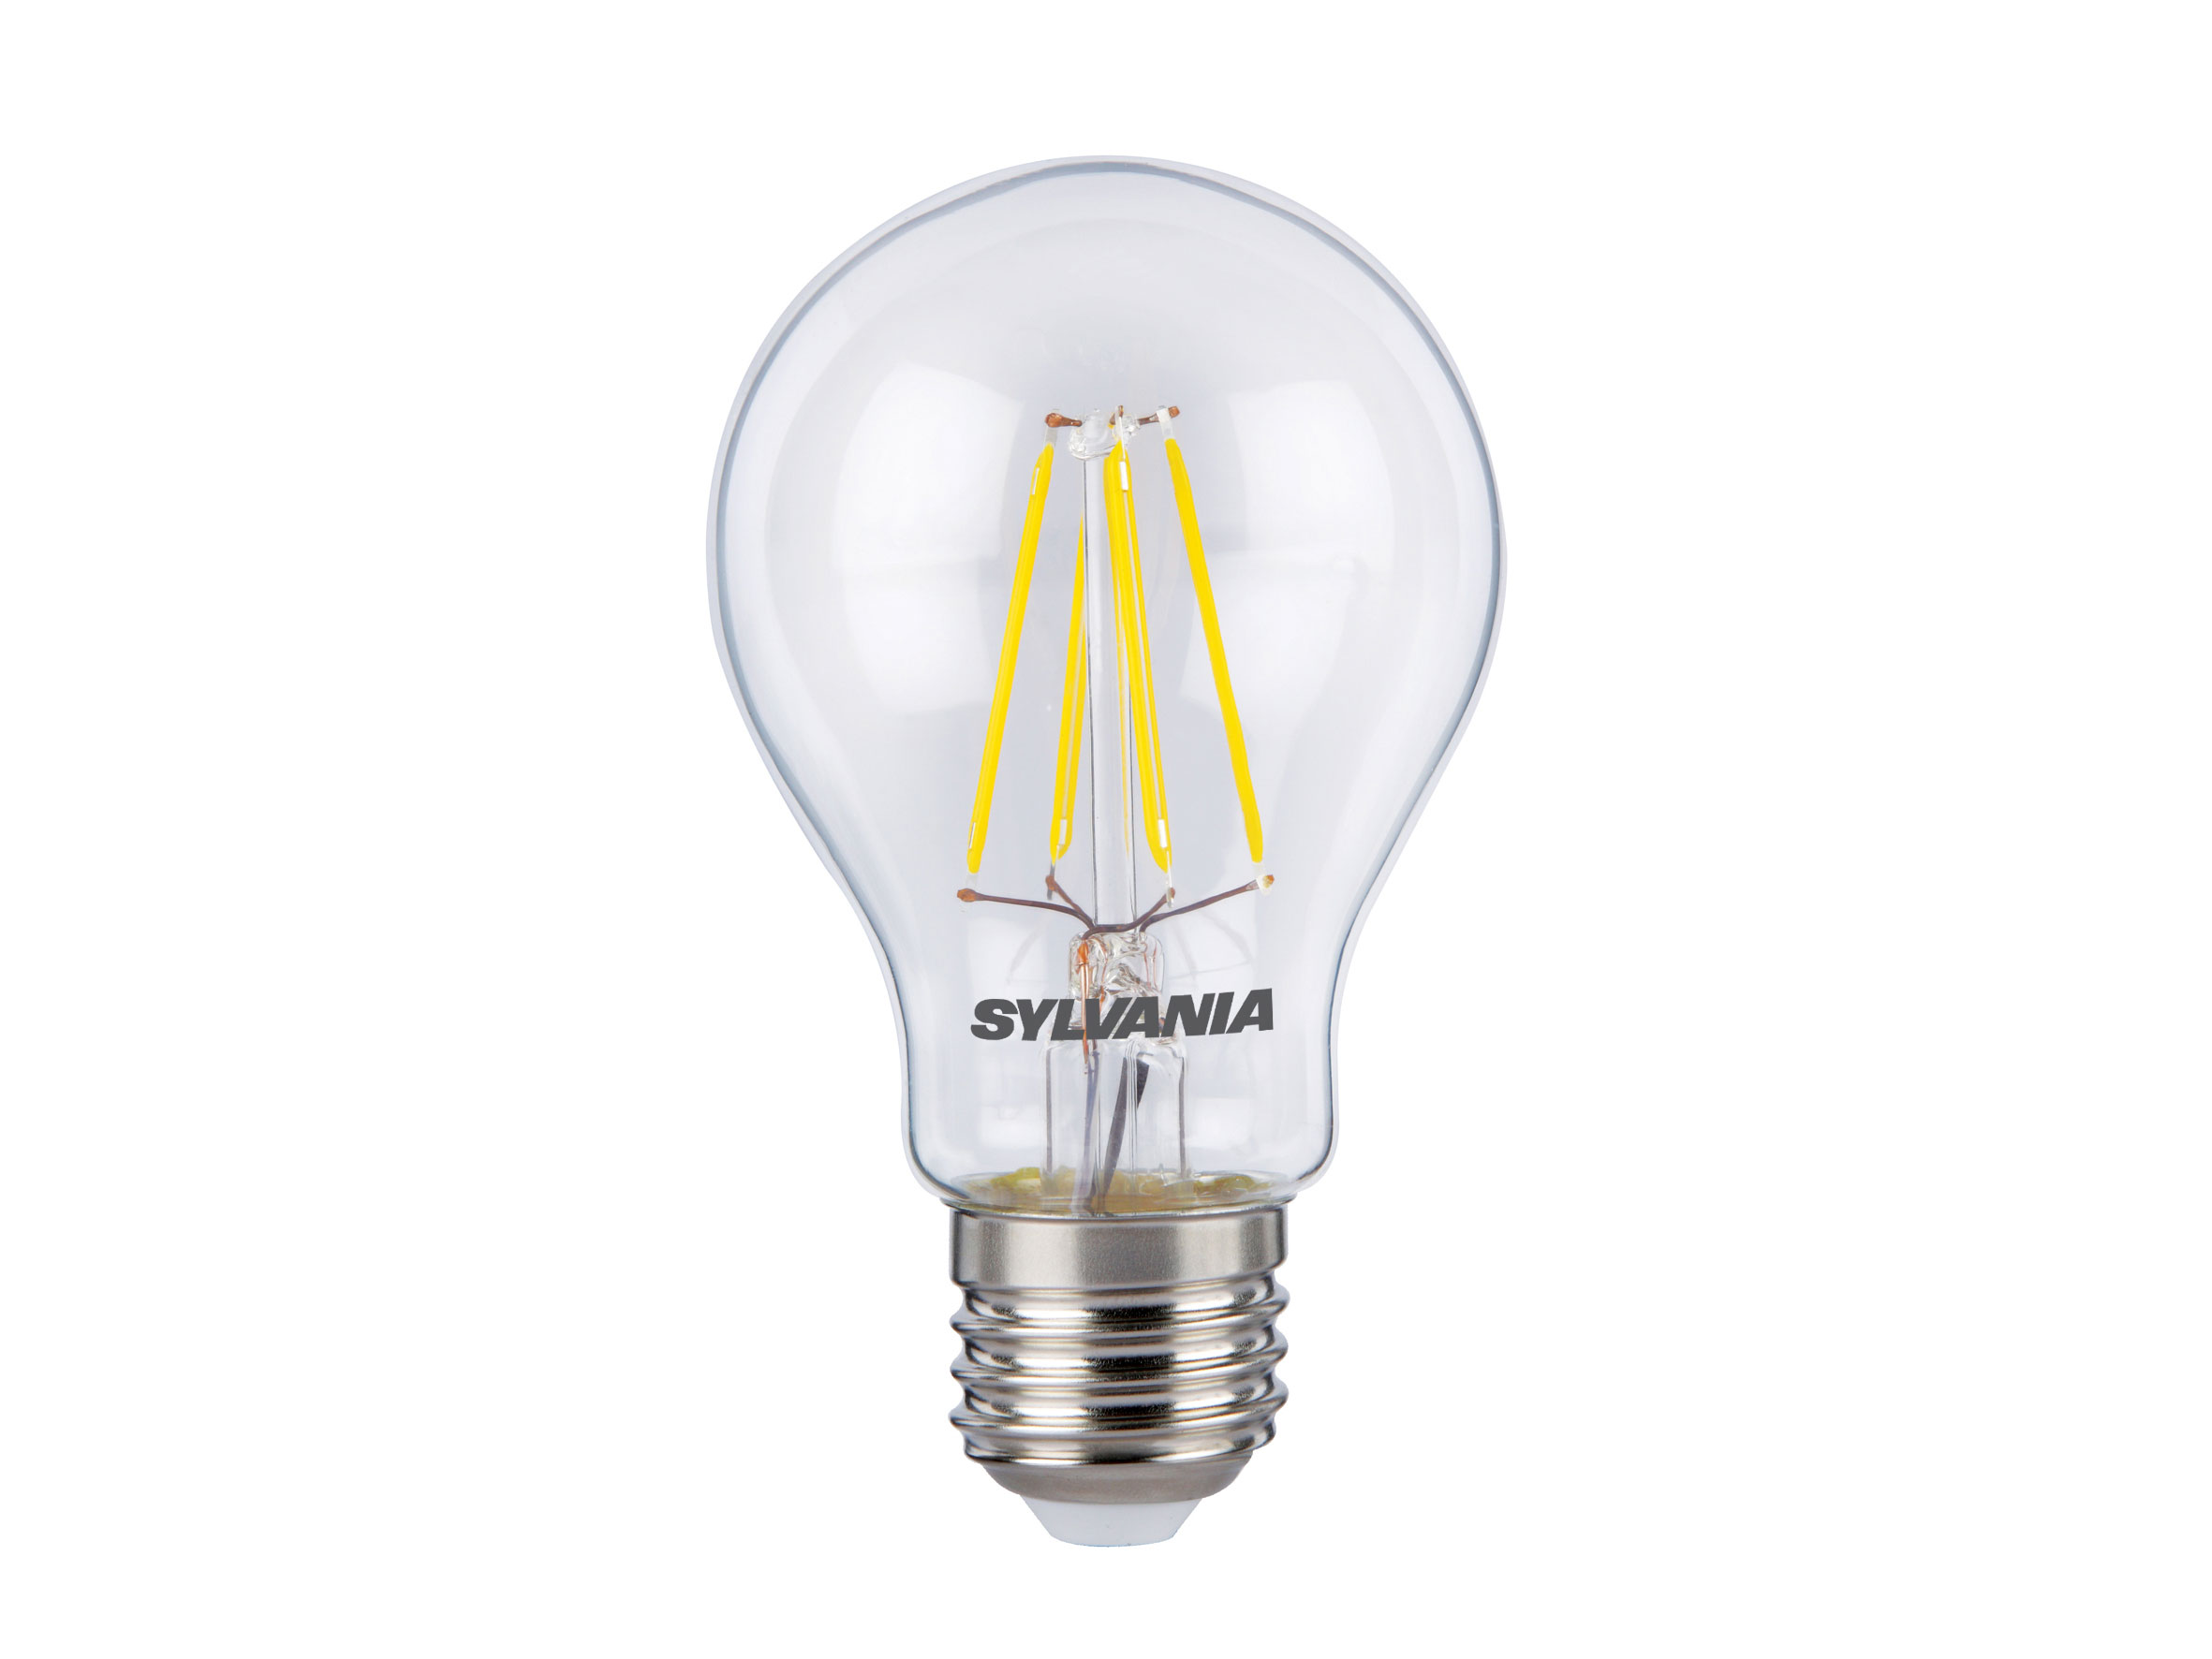 Sylvania 5W LED GLS traditional light bulb E27 ES warm white 2700K non-dimmable